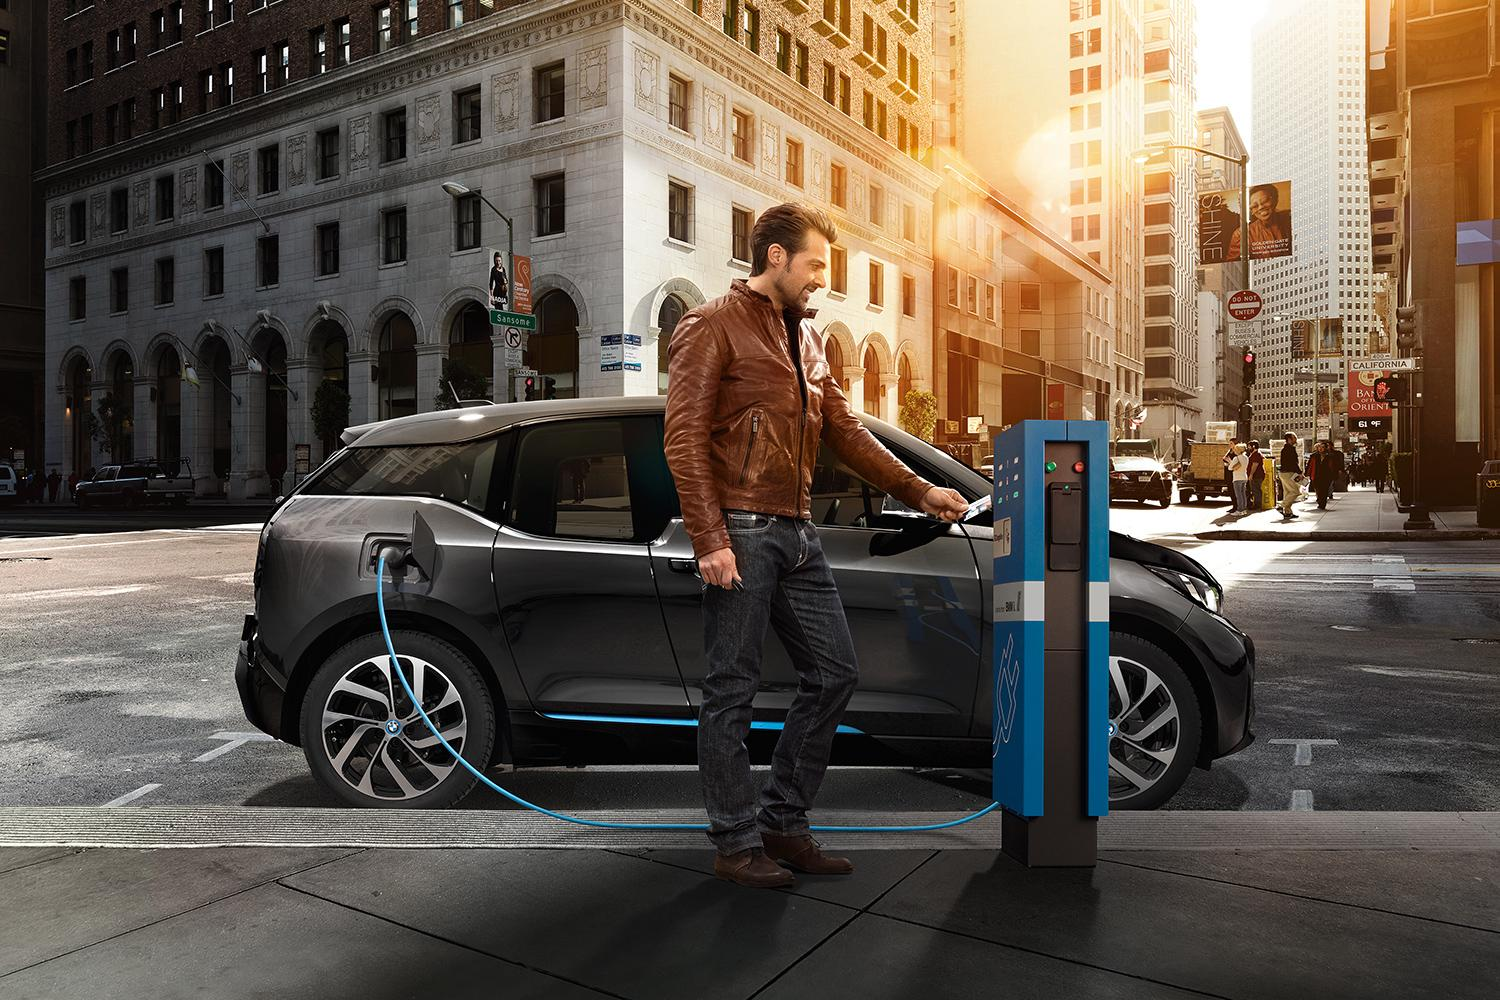 Bmw I3 Electric Car Charging Autos Gallery